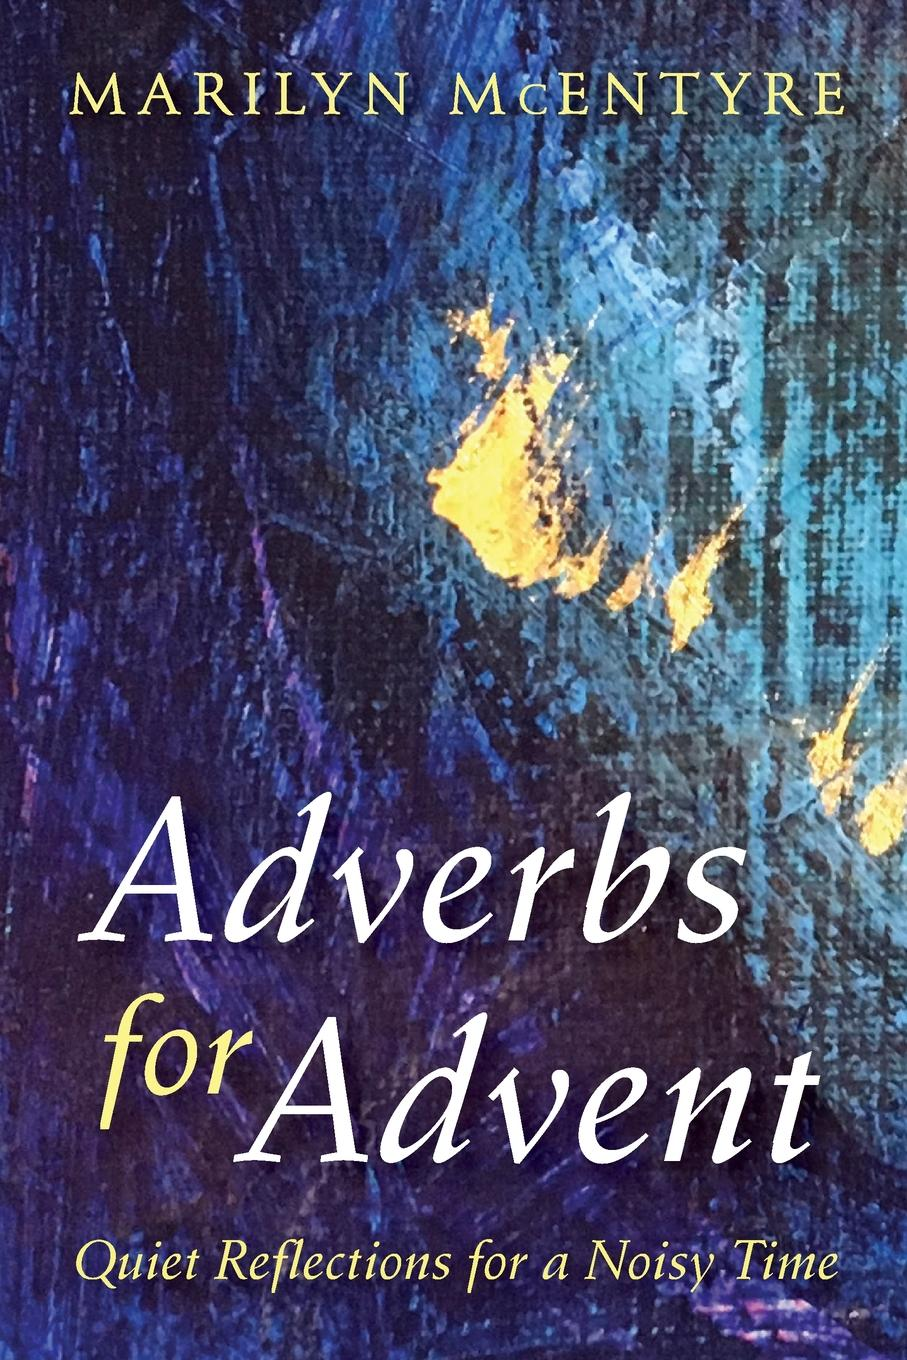 Marilyn McEntyre Adverbs for Advent learning to live the love we promise